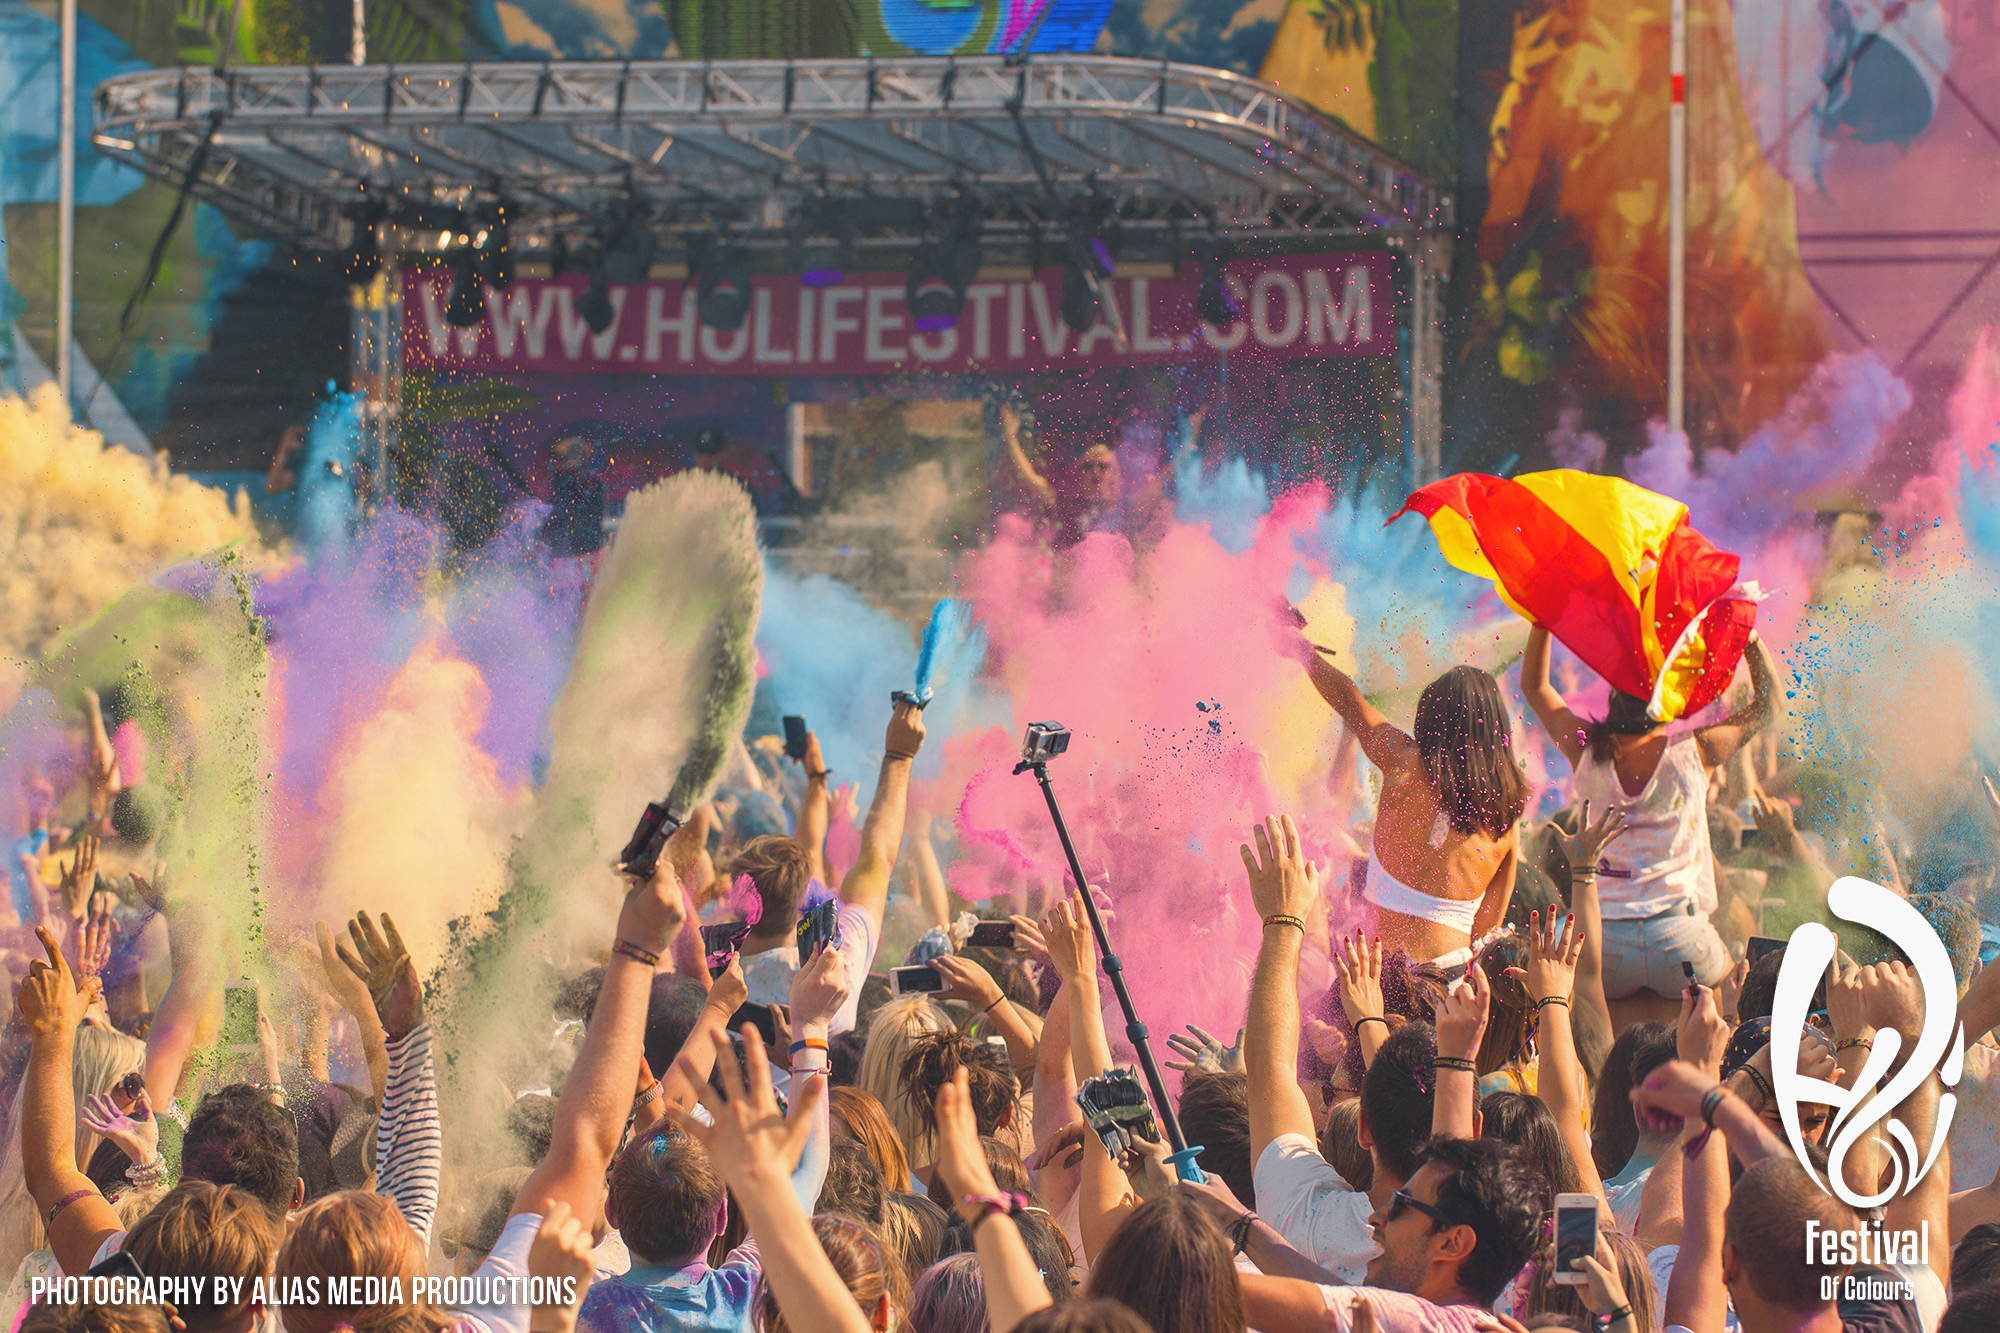 Holi festival photography by Alias Media Productions_8 copy